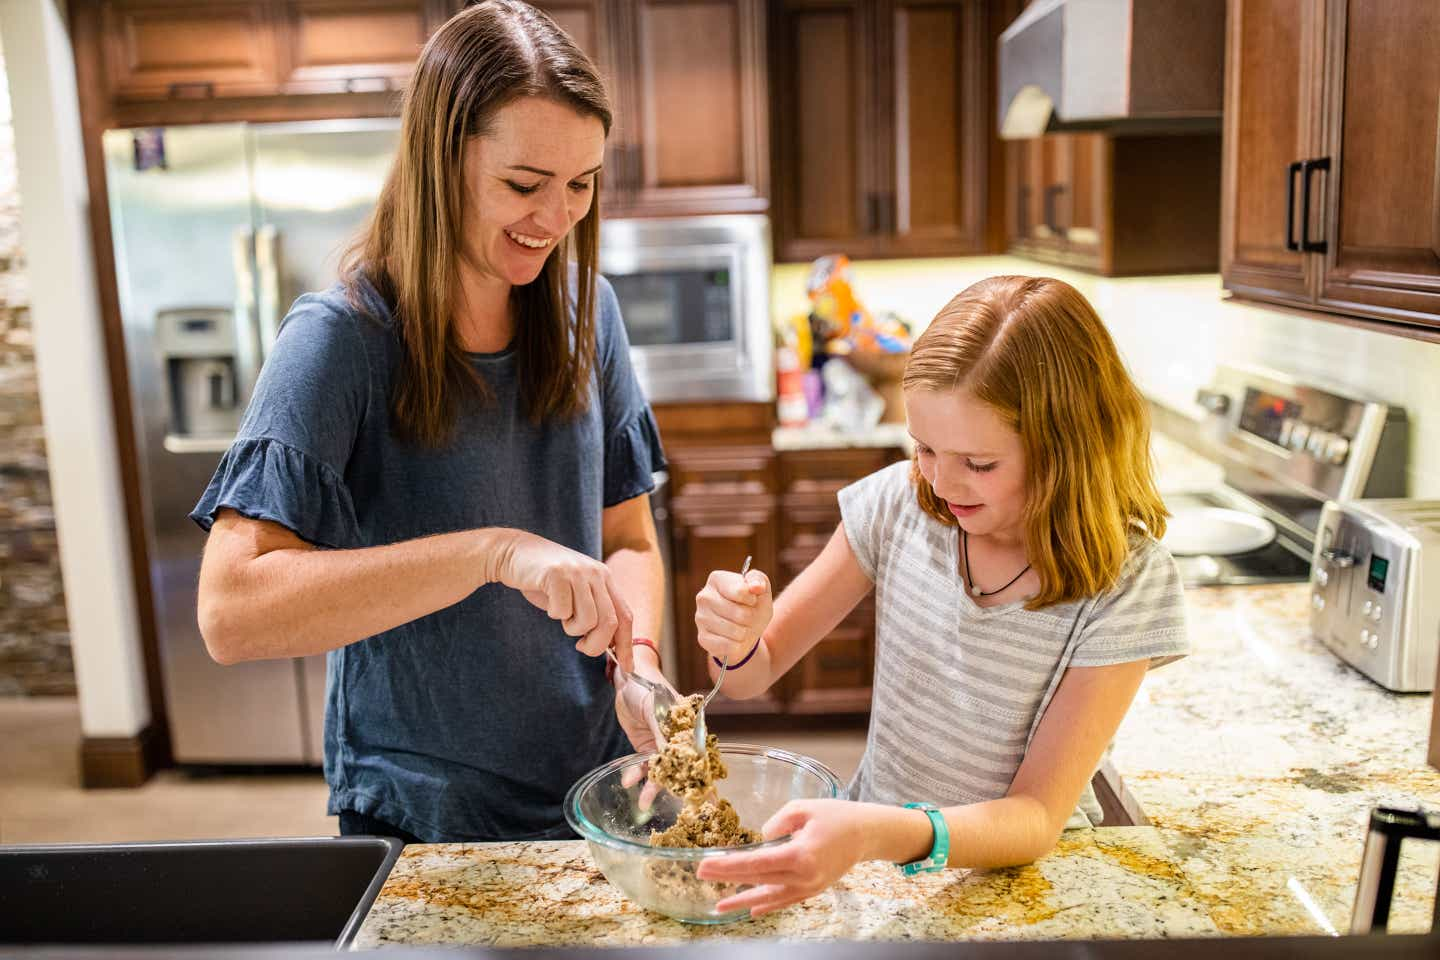 Author Jessica Averett (left) and her daughter (right) bake cookies in our Scottsdale Resort Villa kitchen.